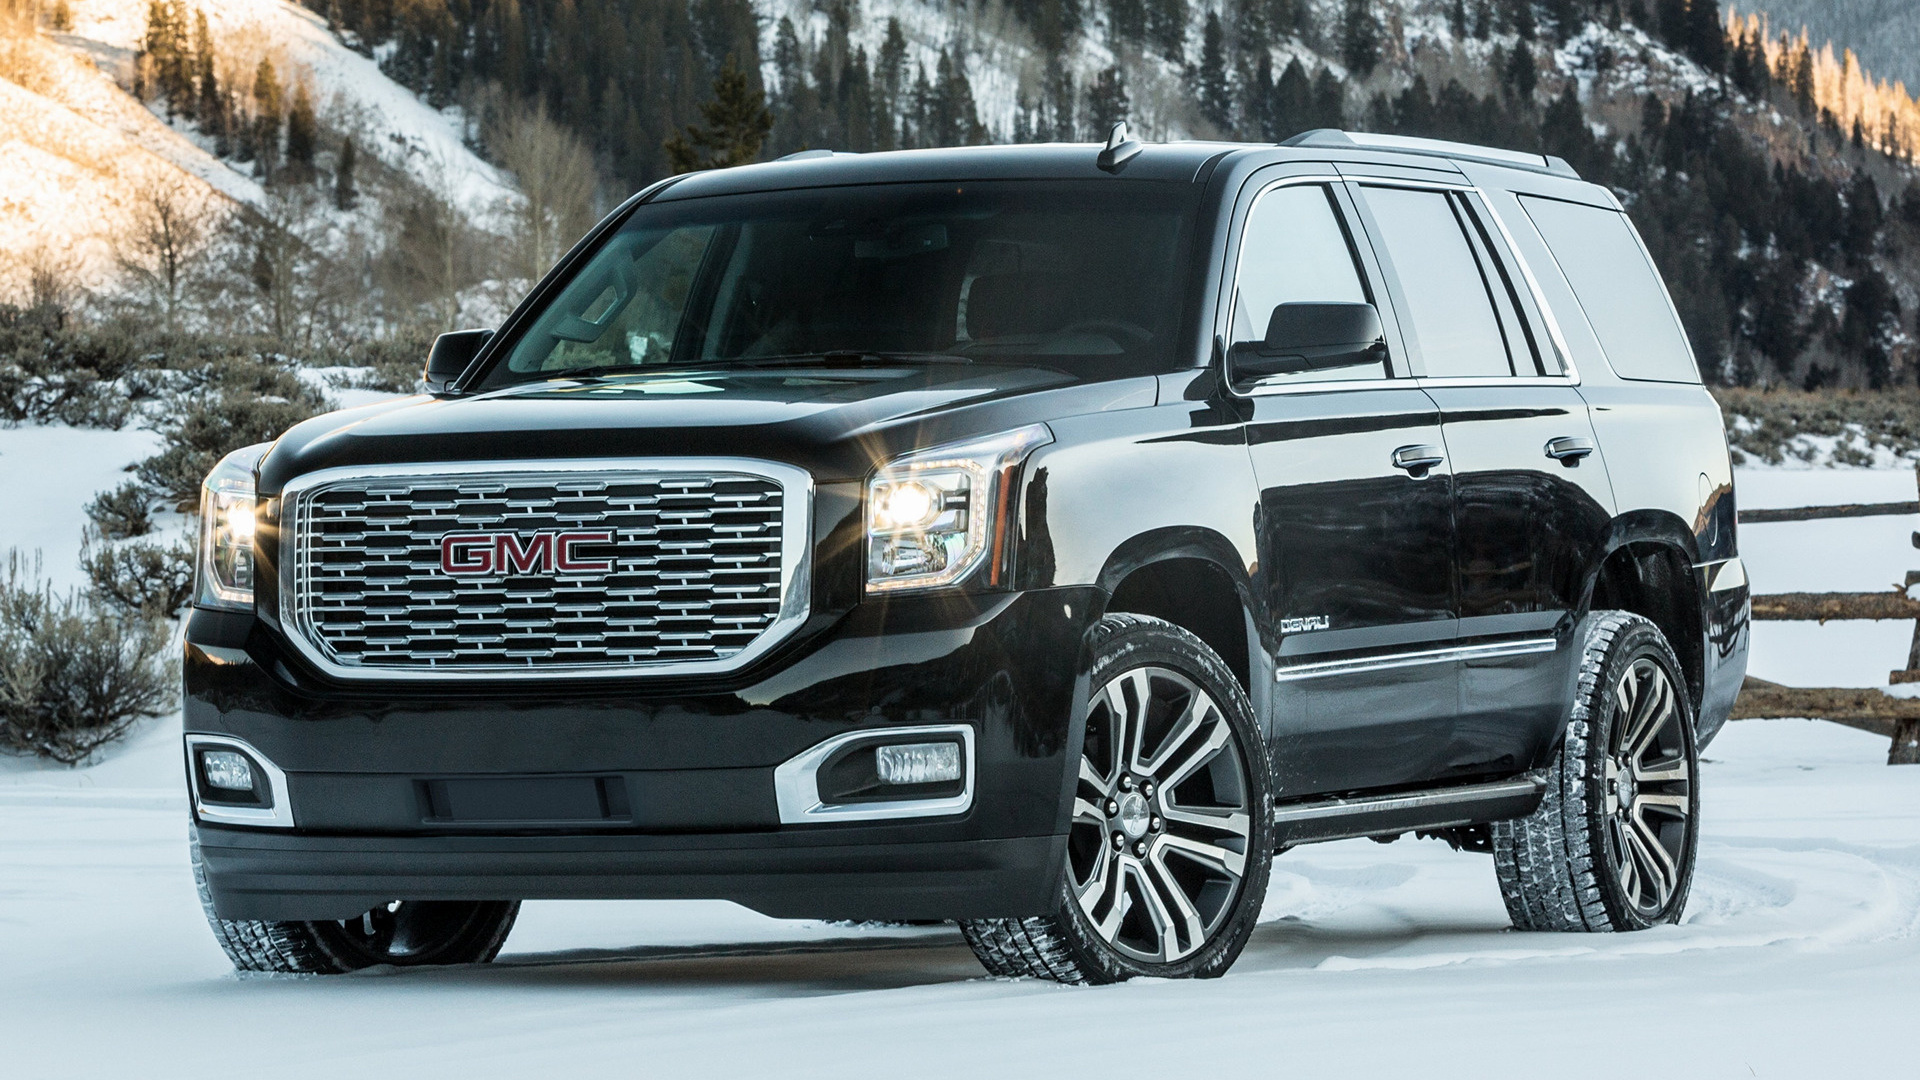 2018 Gmc Yukon Denali Wallpapers And Hd Images Car Pixel